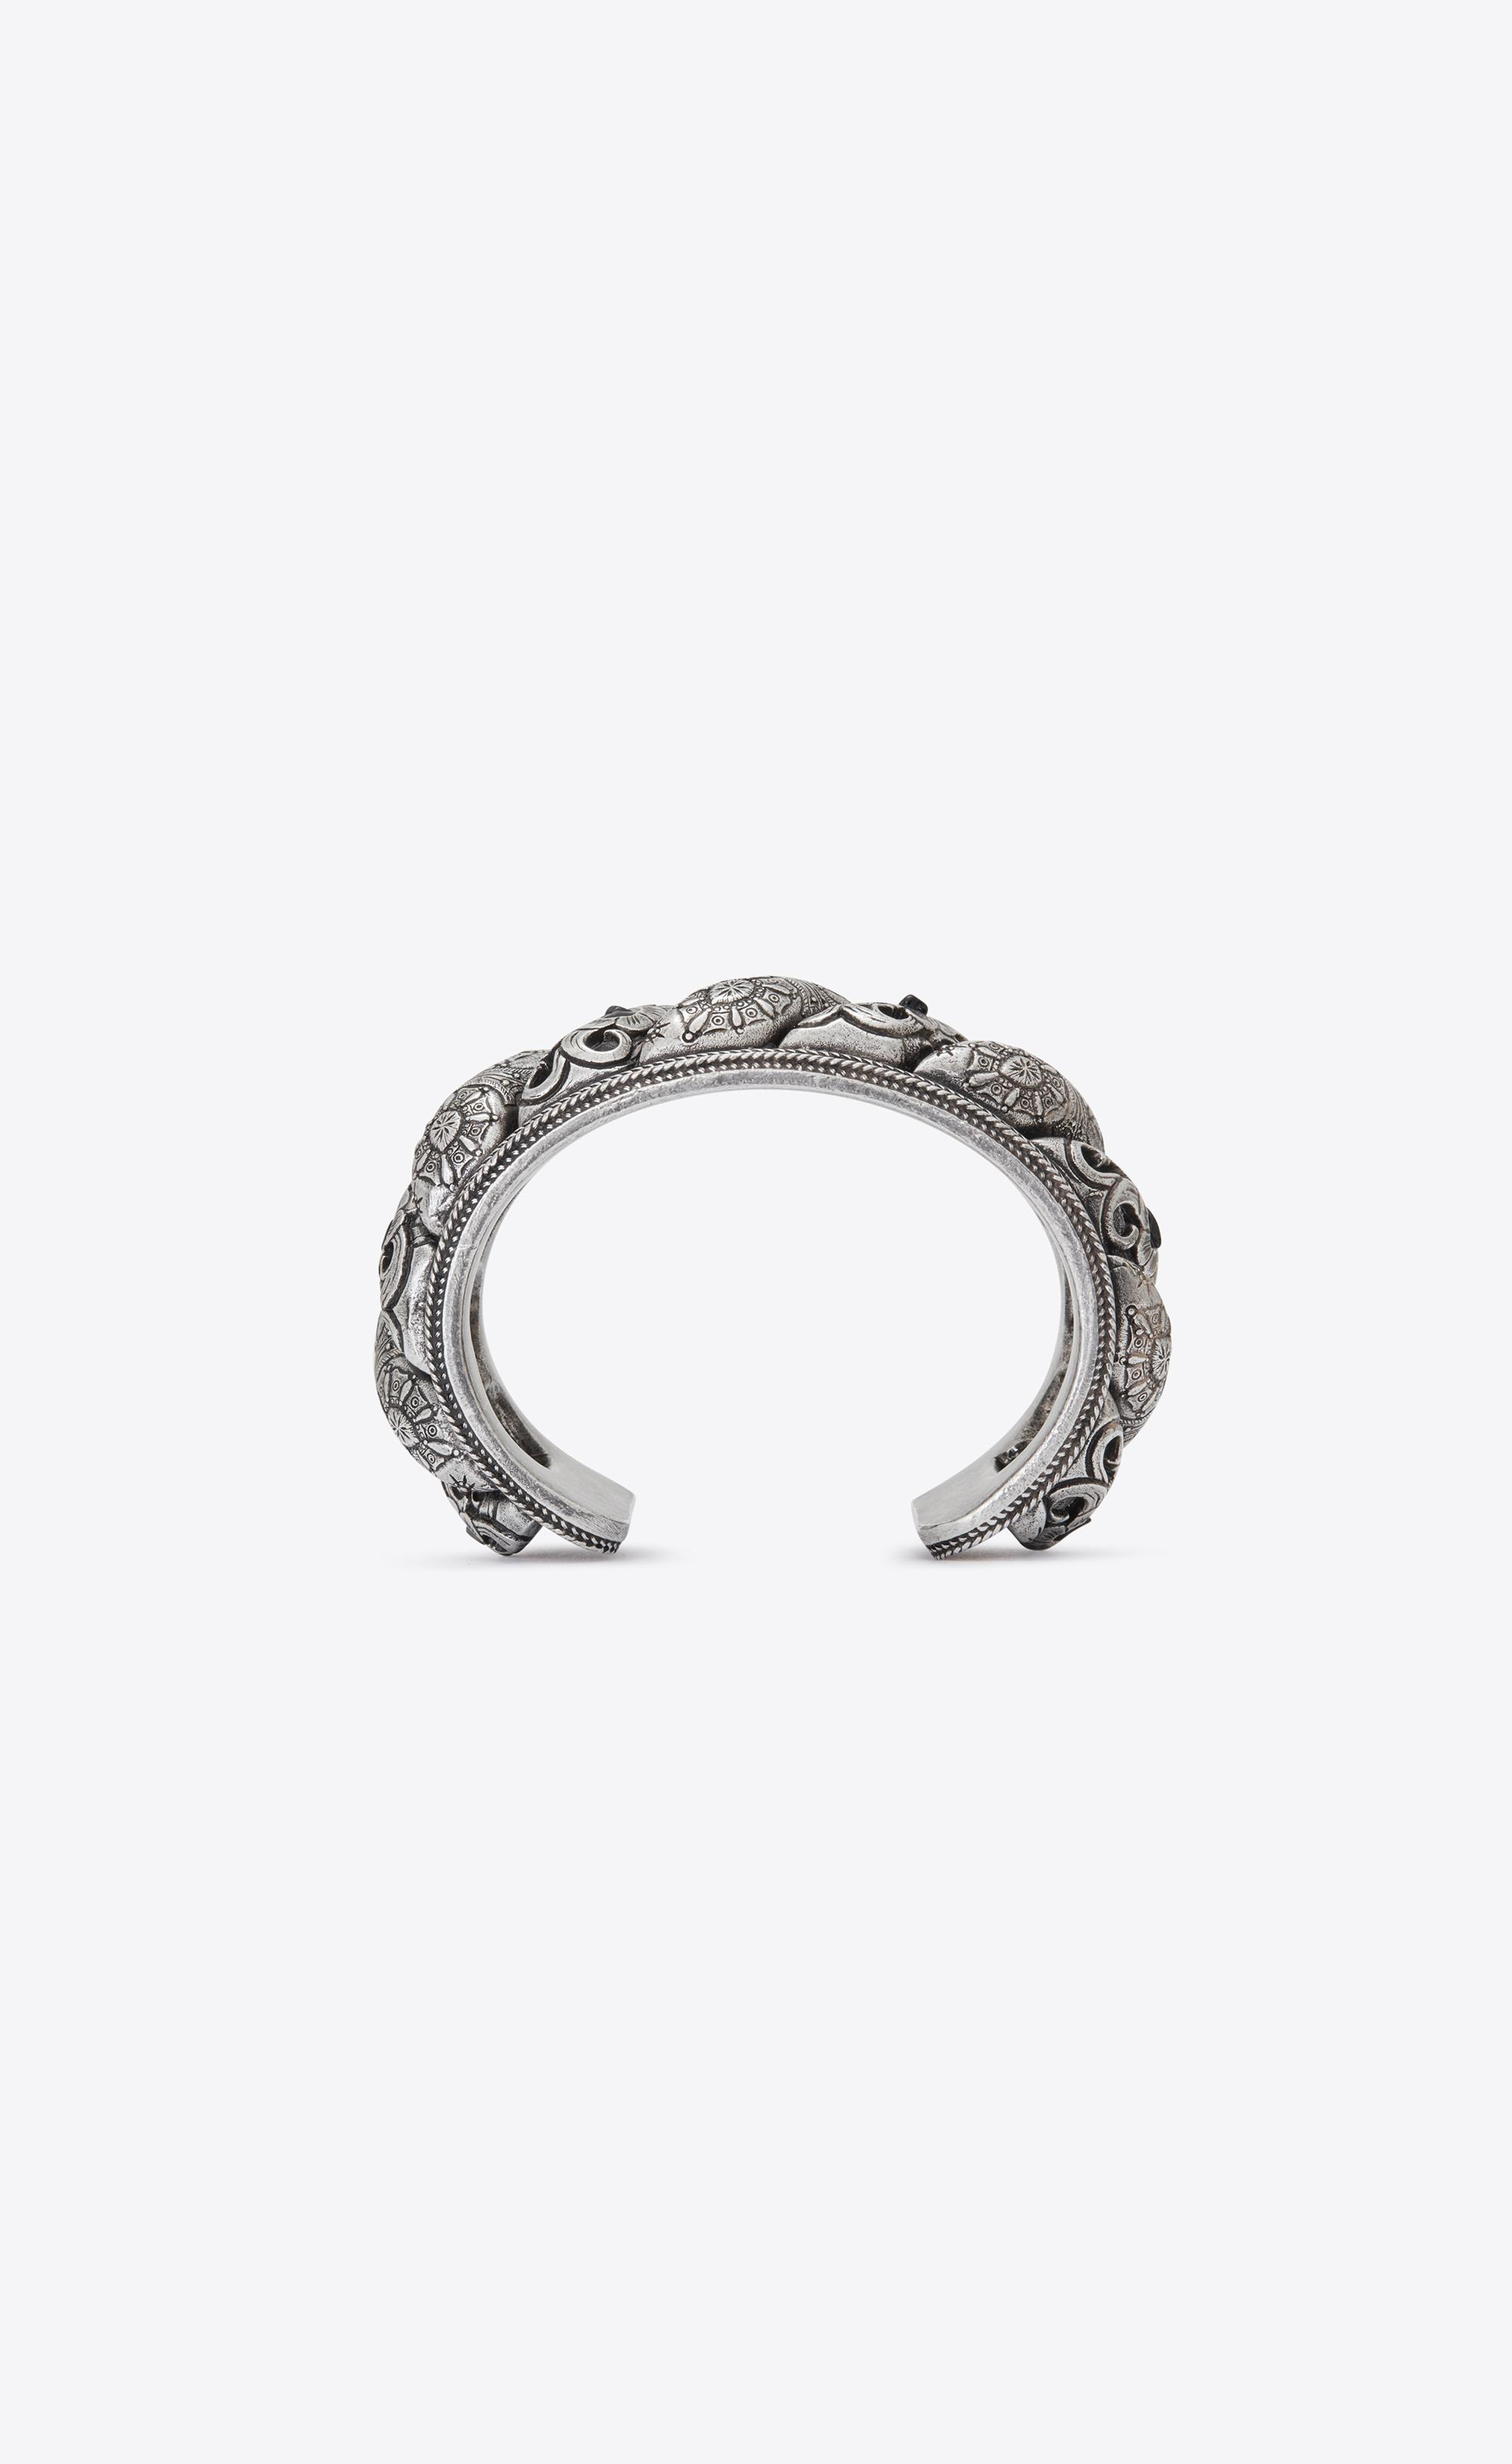 445265cd6db Saint Laurent - Metallic Marrakech Cuff Bracelet In Silver-toned Tin And  Black Agate -. View fullscreen